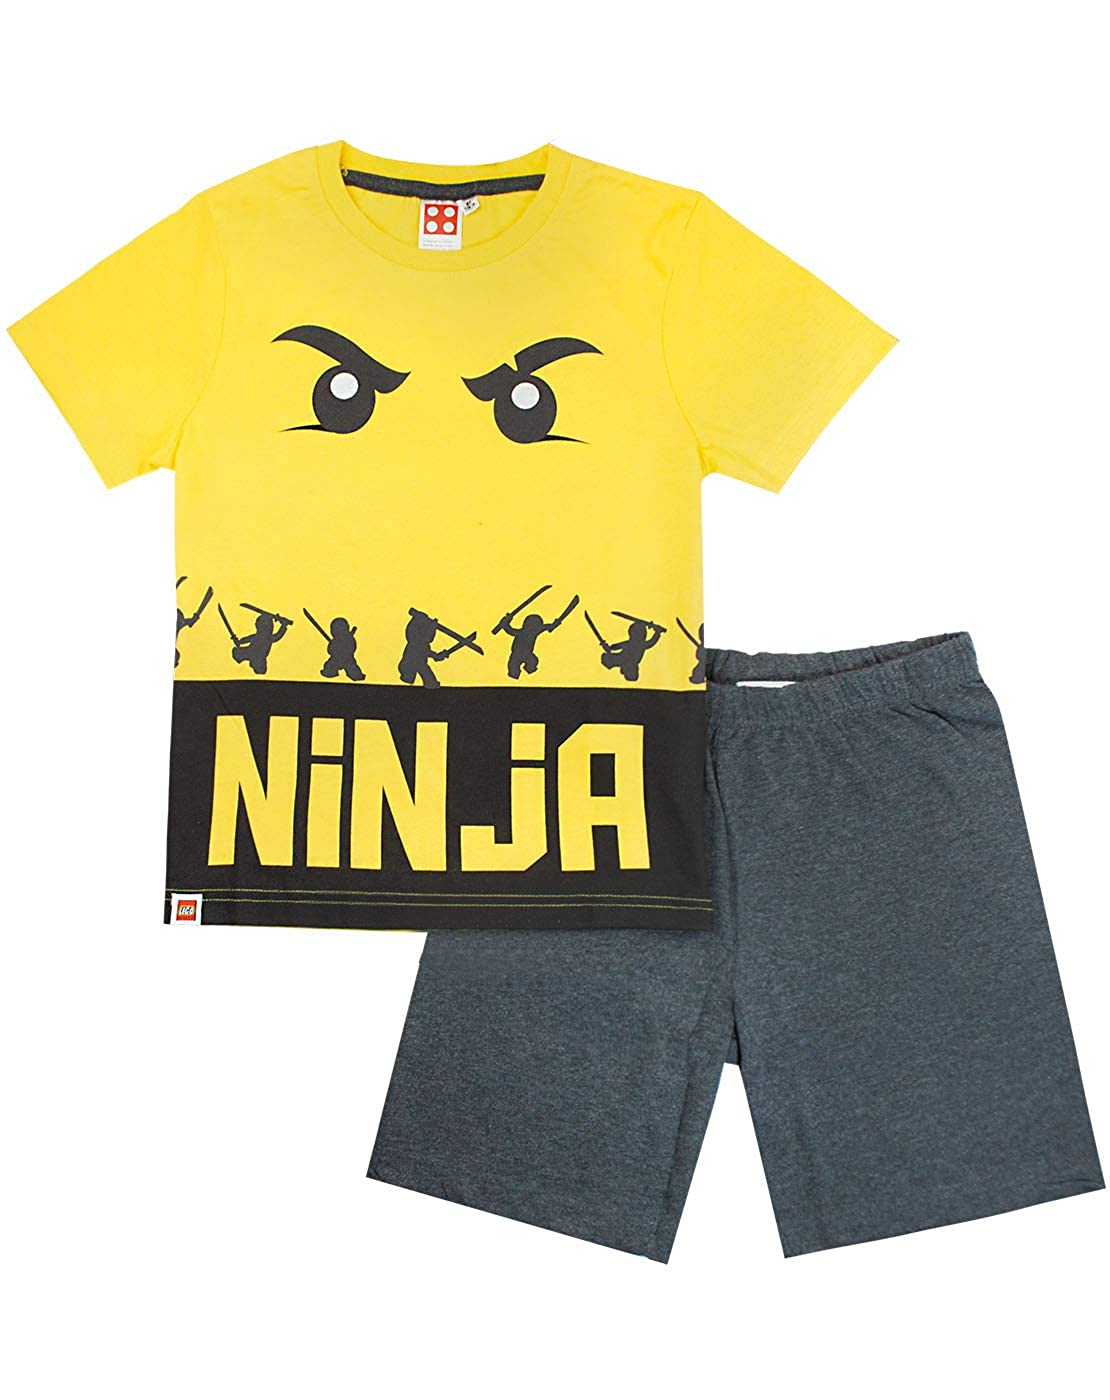 Amazon.com: Lego Ninjago Ninja Boys Pyjamas: Clothing